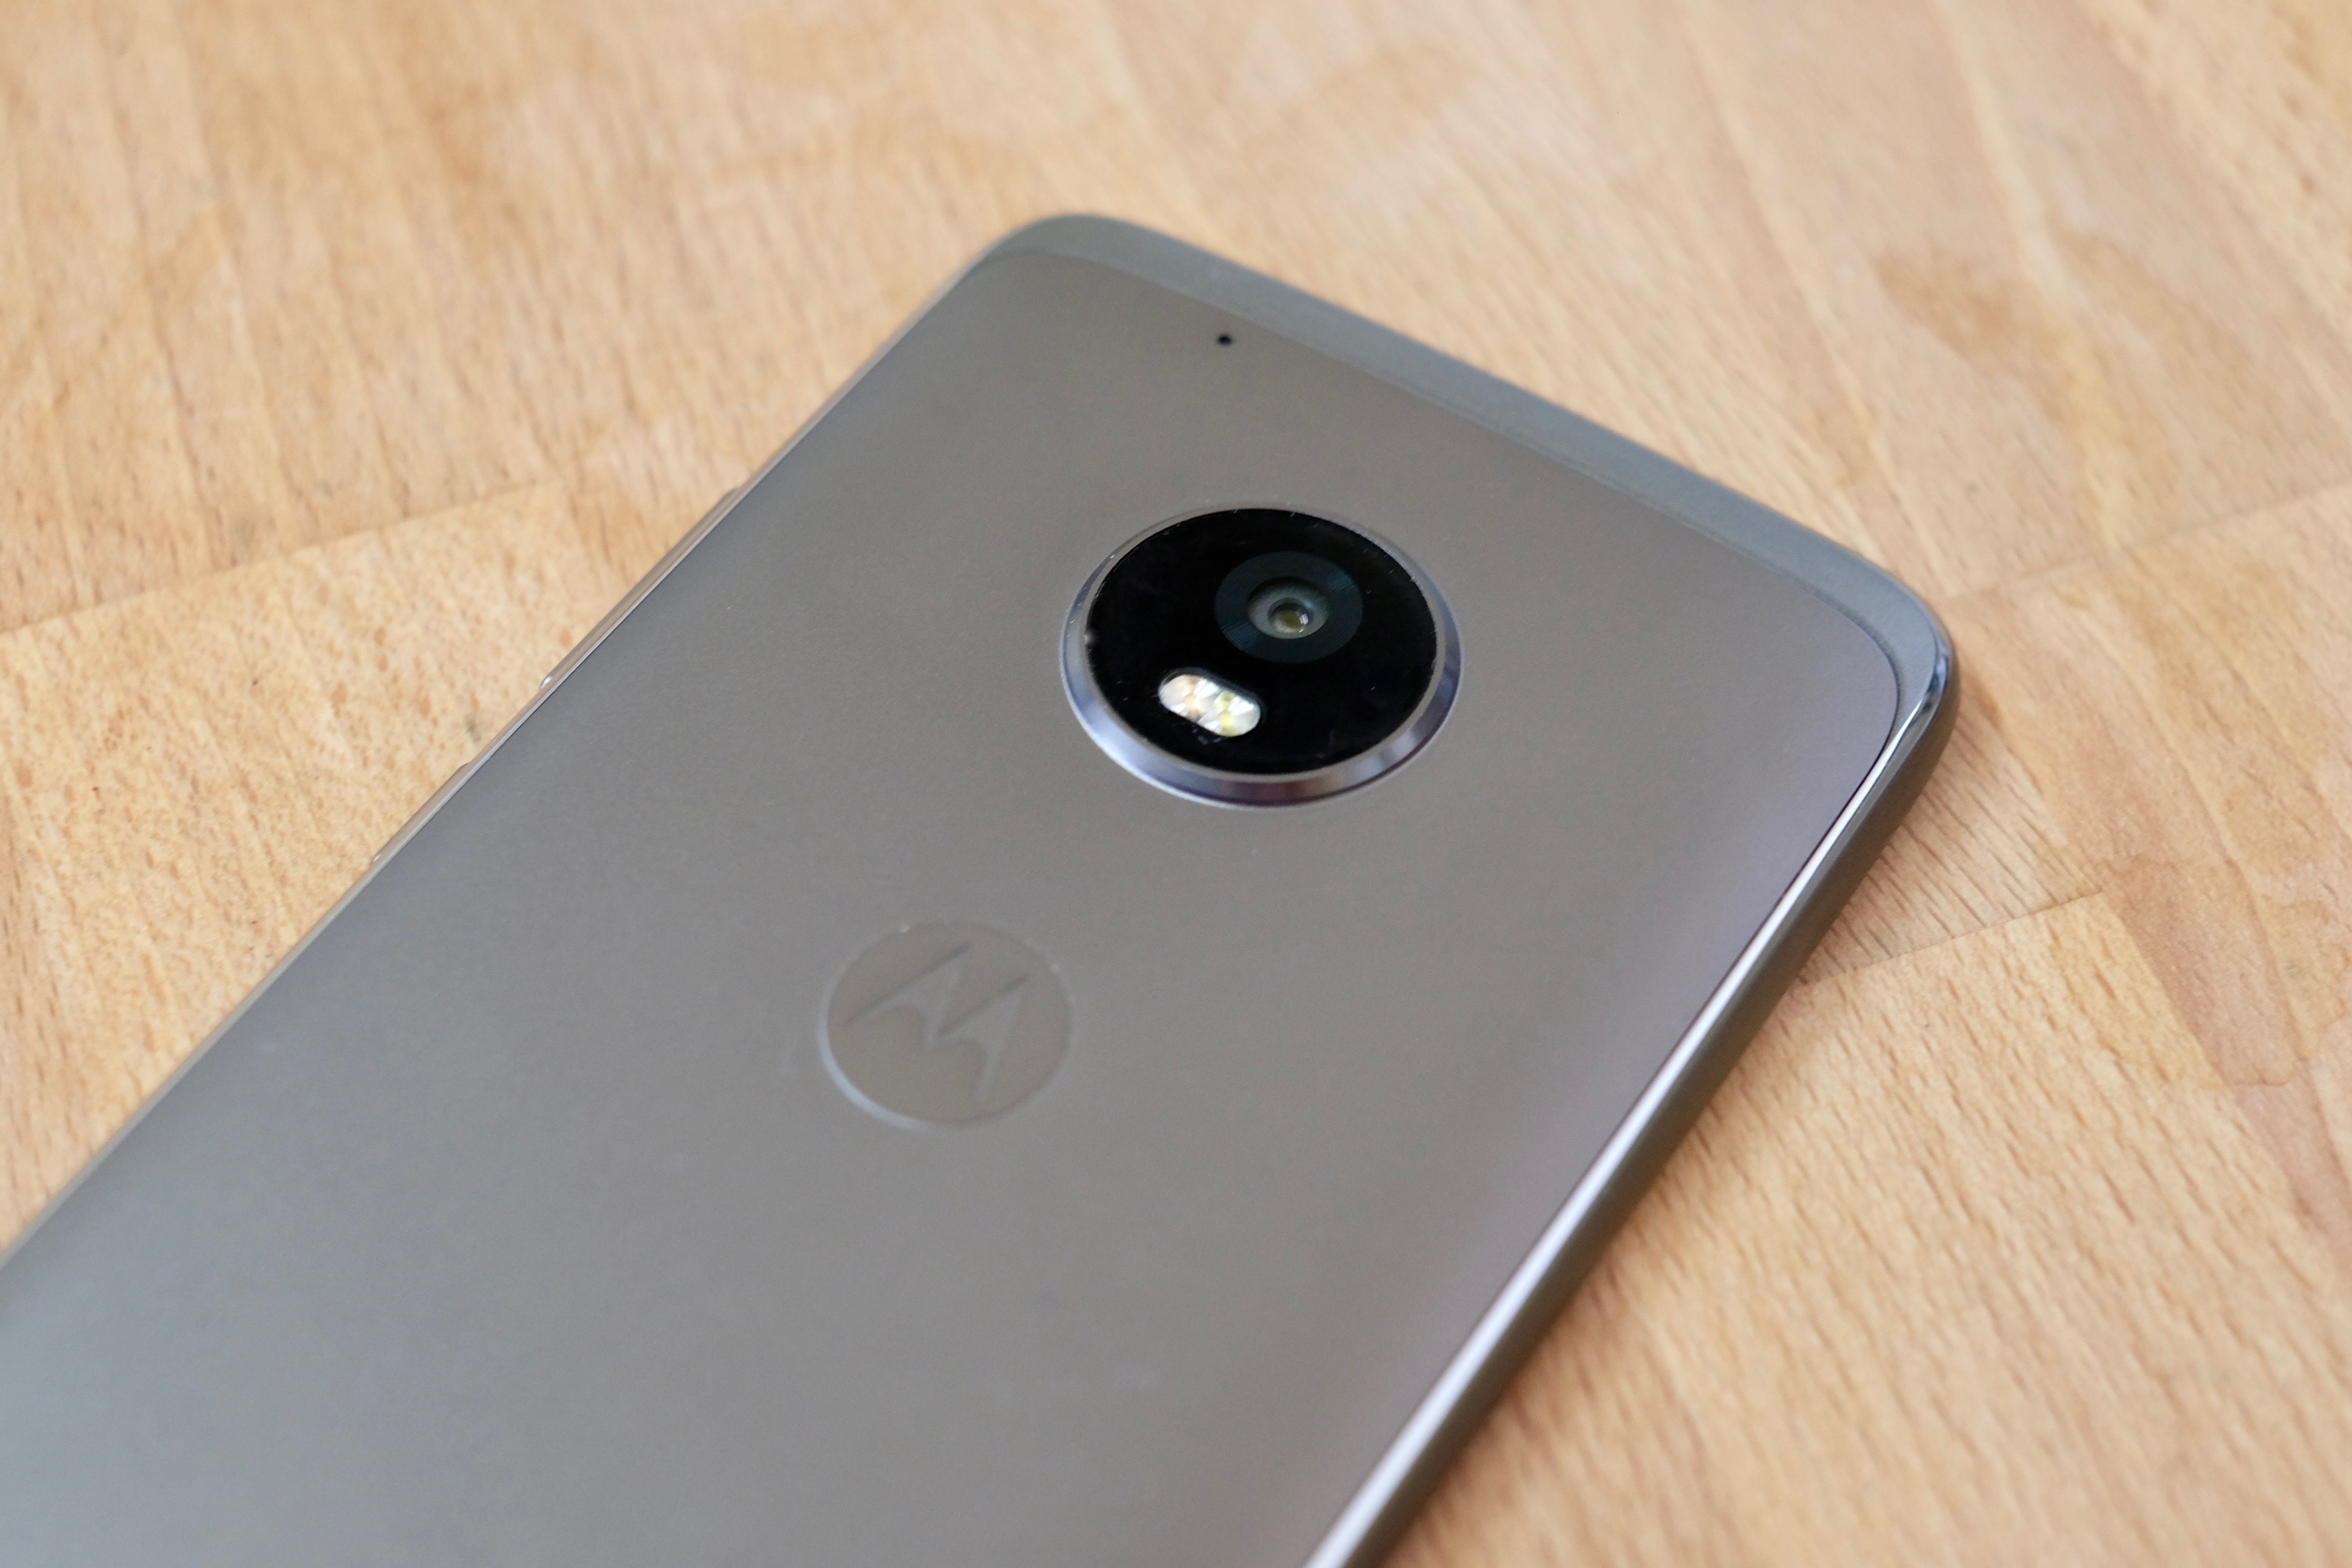 Moto G5 Plus review: Inexpensive doesn't have to mean cheap